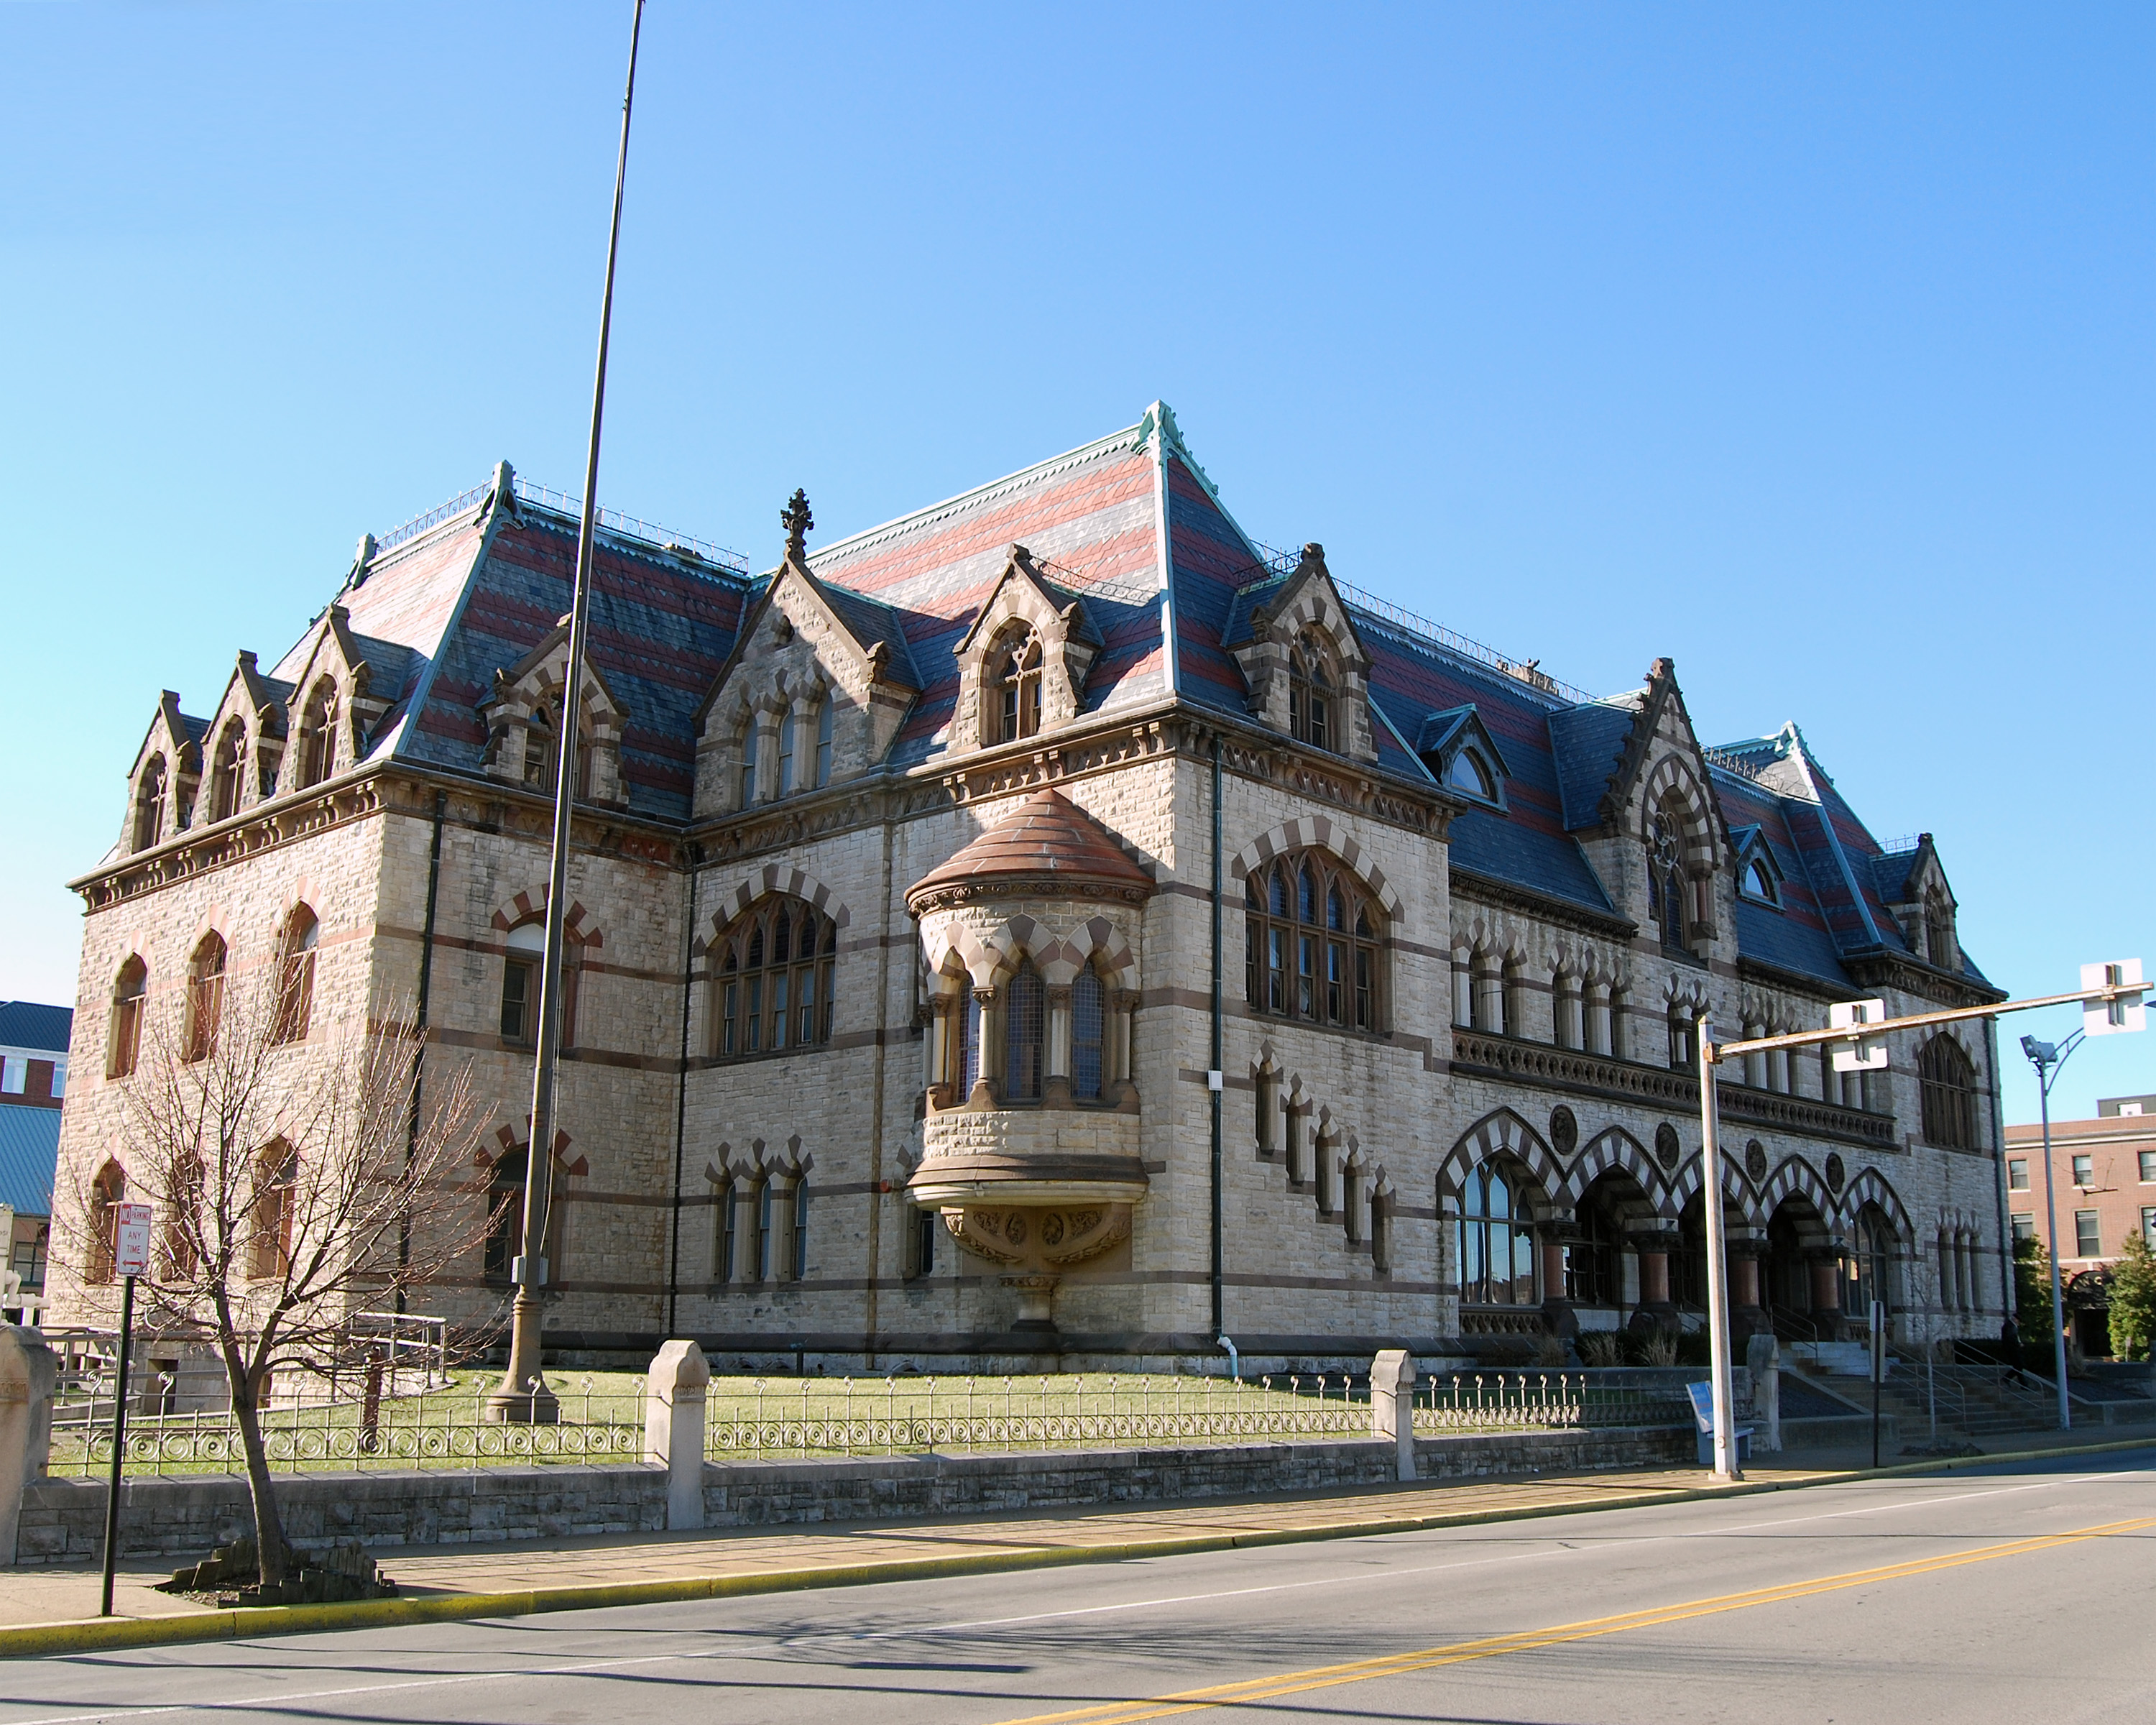 File:Evansville Indiana - old post office.jpg - Wikimedia ...